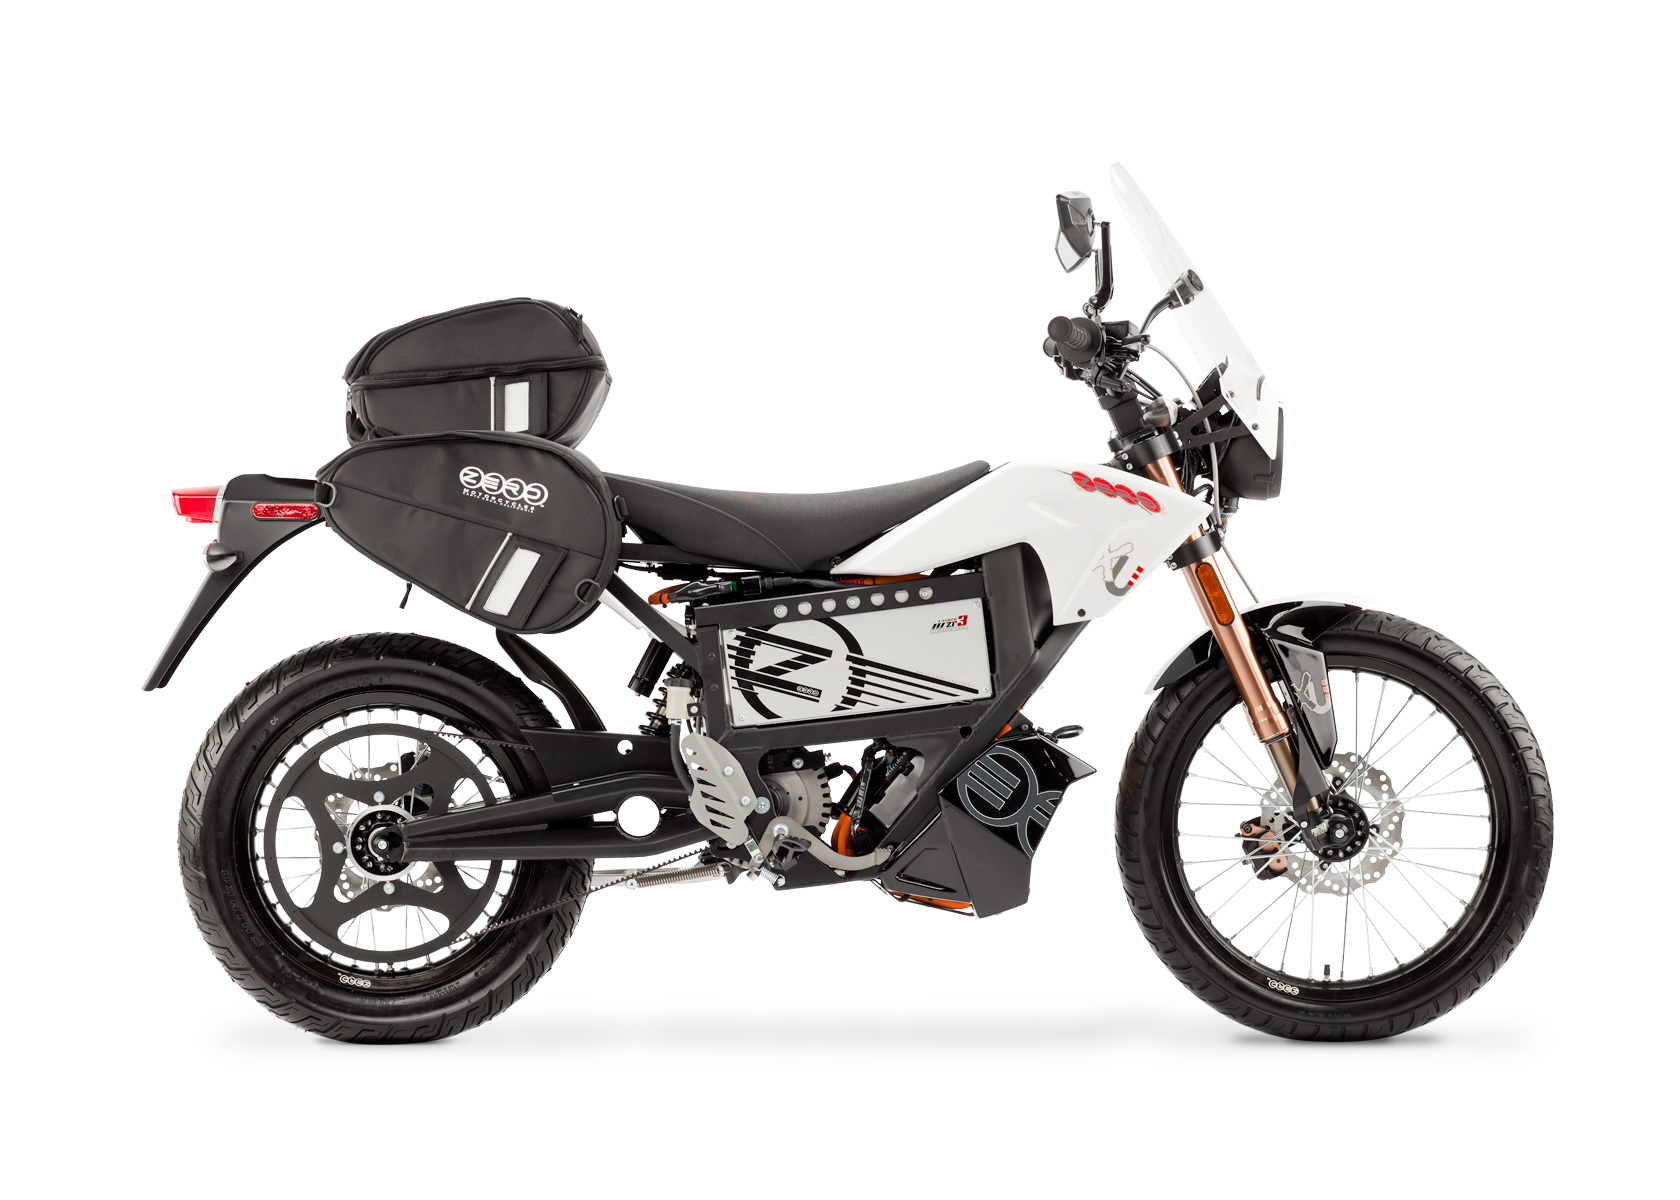 '.2012 Zero XU Electric Motorcycle: Profile Right with Side Bags and Windscreen, White Background.'